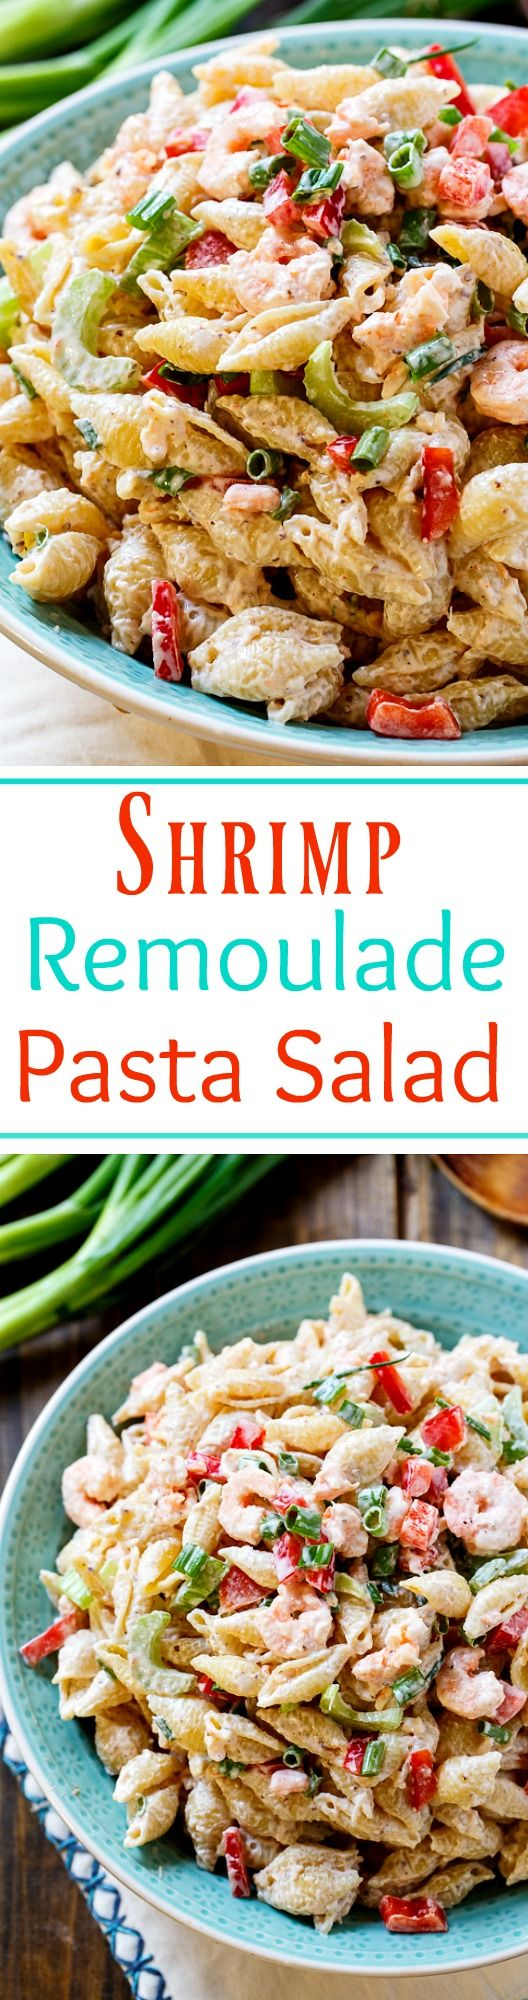 Shrimp Remoulade Pasta Salad has a classic New Orleans Remoulade dressing and lots of baby shrimp mixed in. Chopped celery and red bell pepper give the pasta salad a little crunch and horseradish and Tabasco sauce give it some bite.